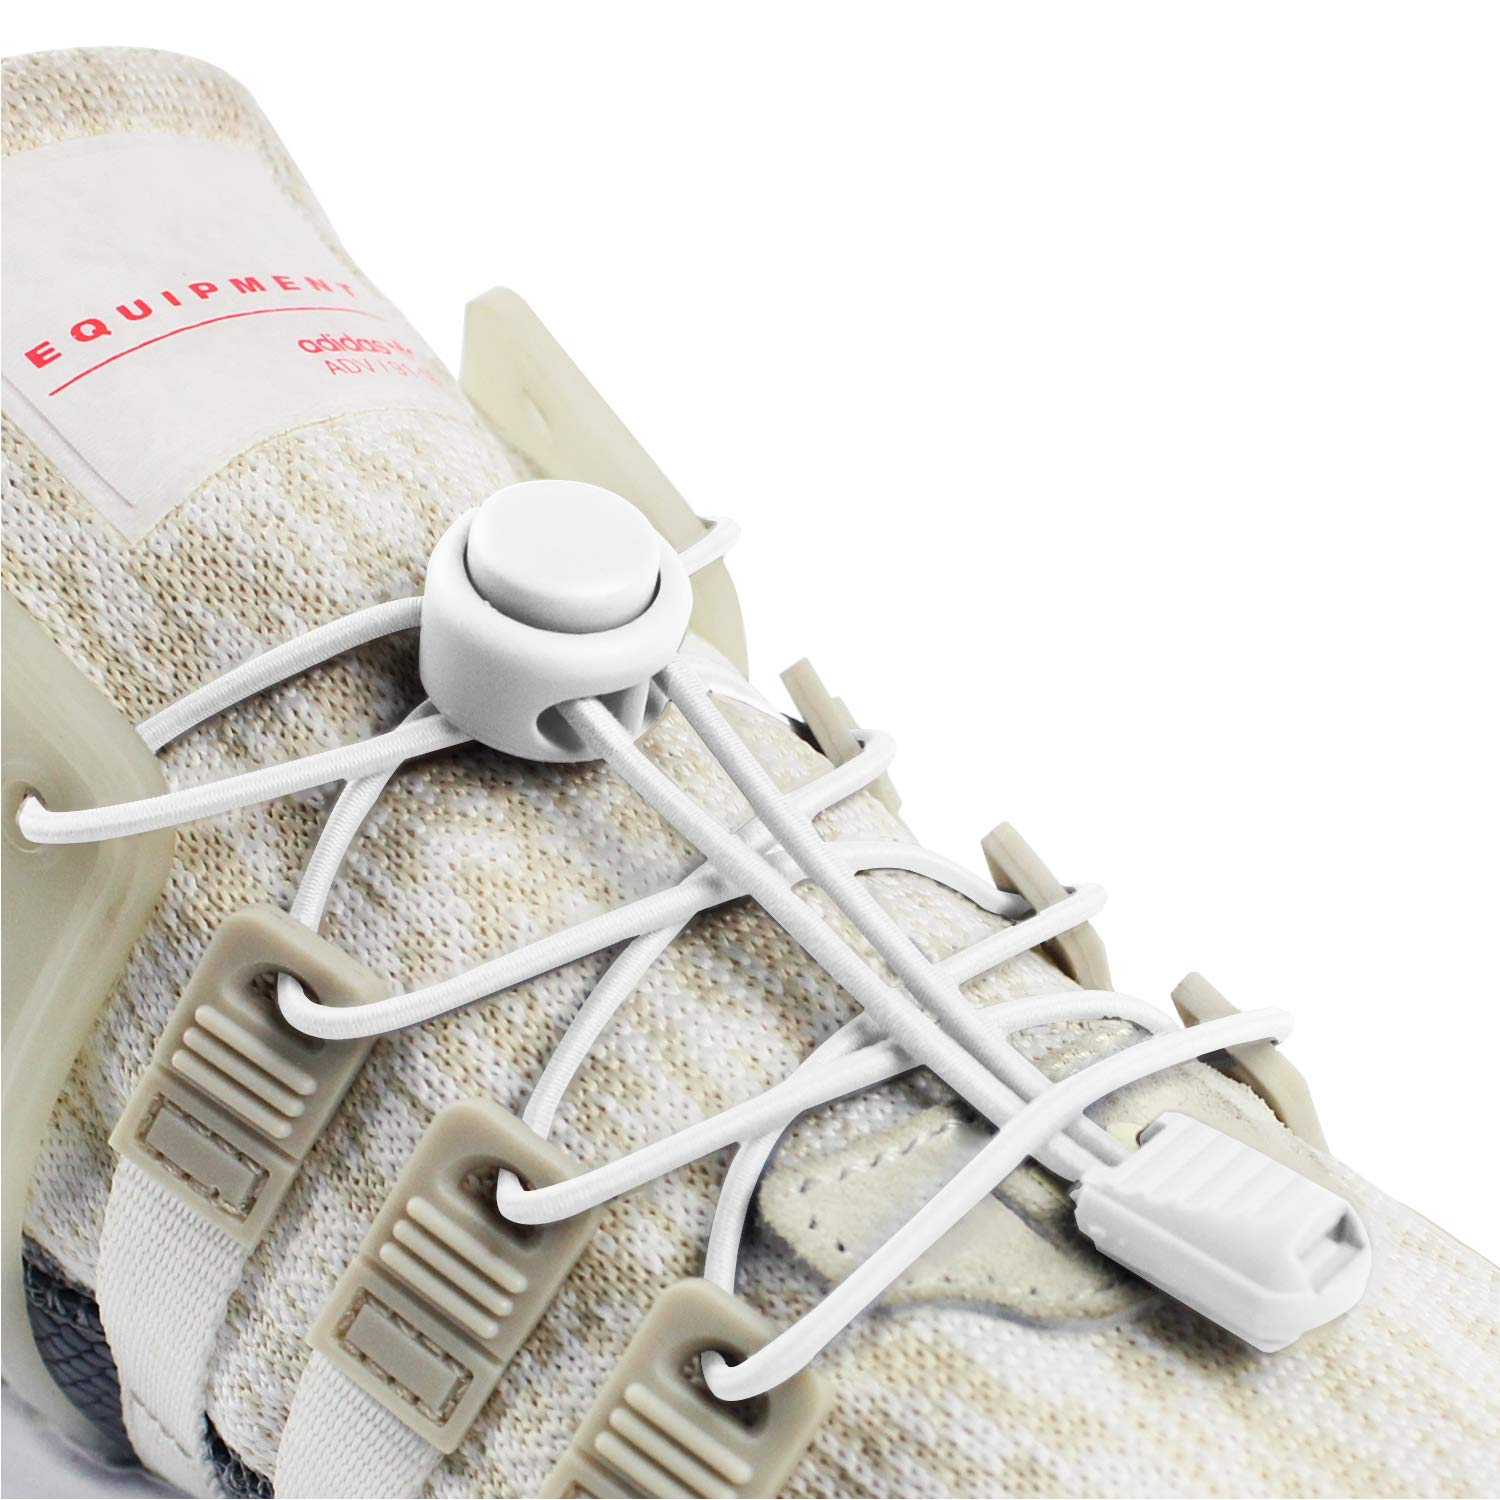 Elastic Shoelaces for Kids and Adults INMAKER No Tie Shoe Laces for Sneakers